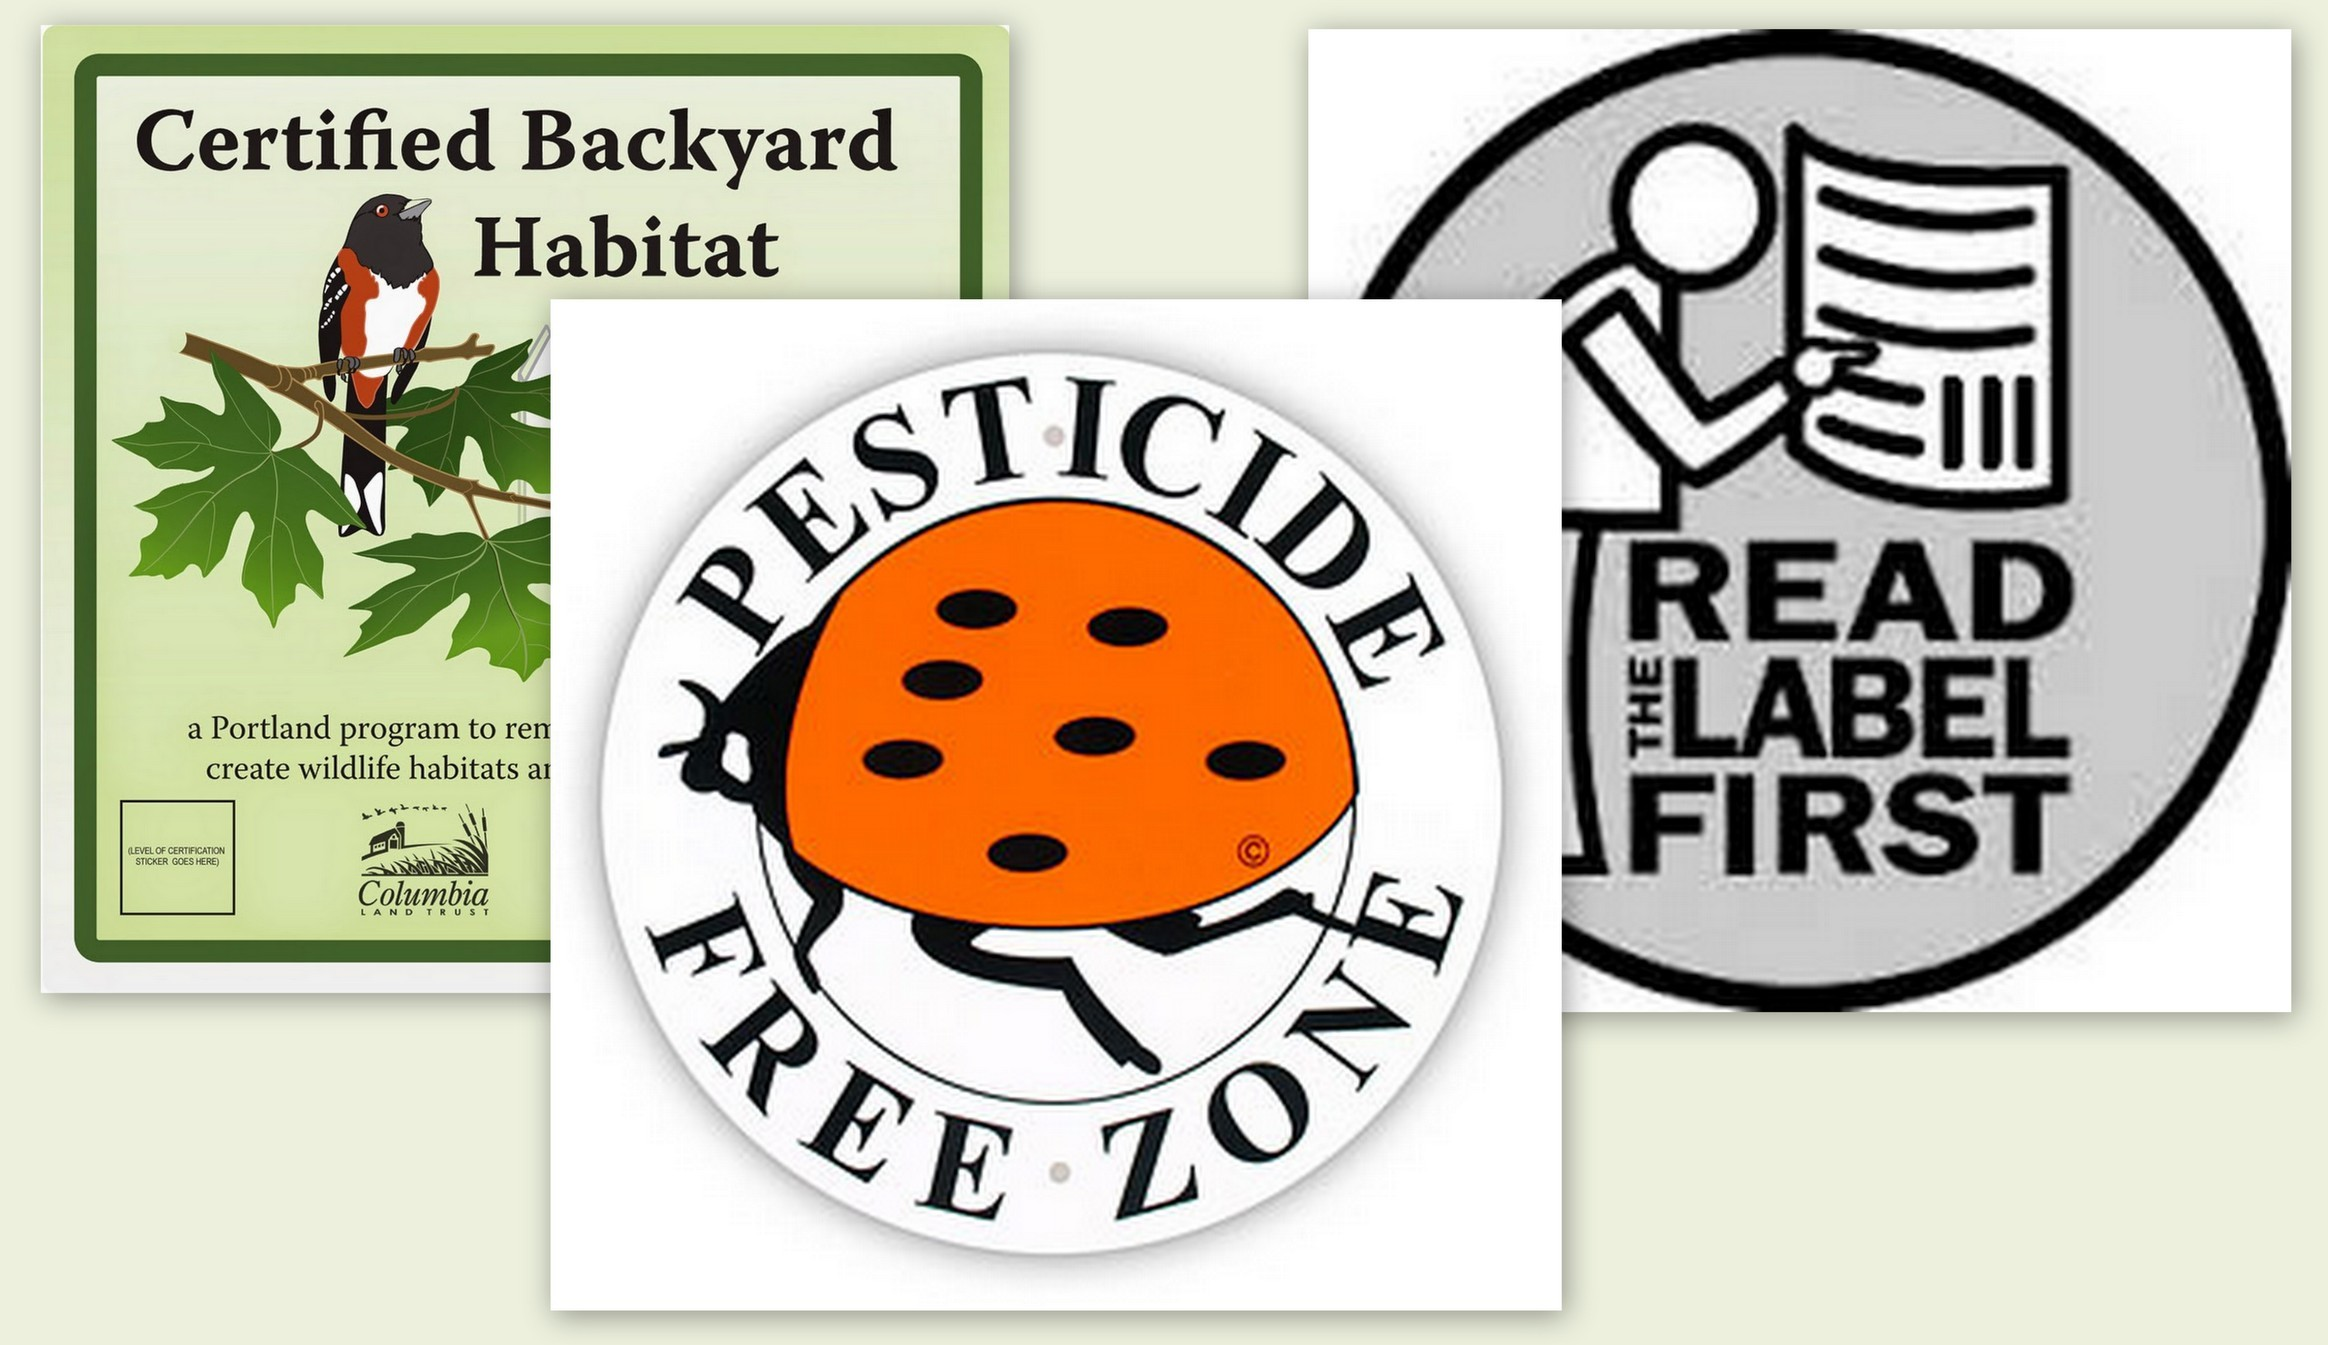 We Honor Pesticide Free Zones • Backyard Habitats • Right to Transparency